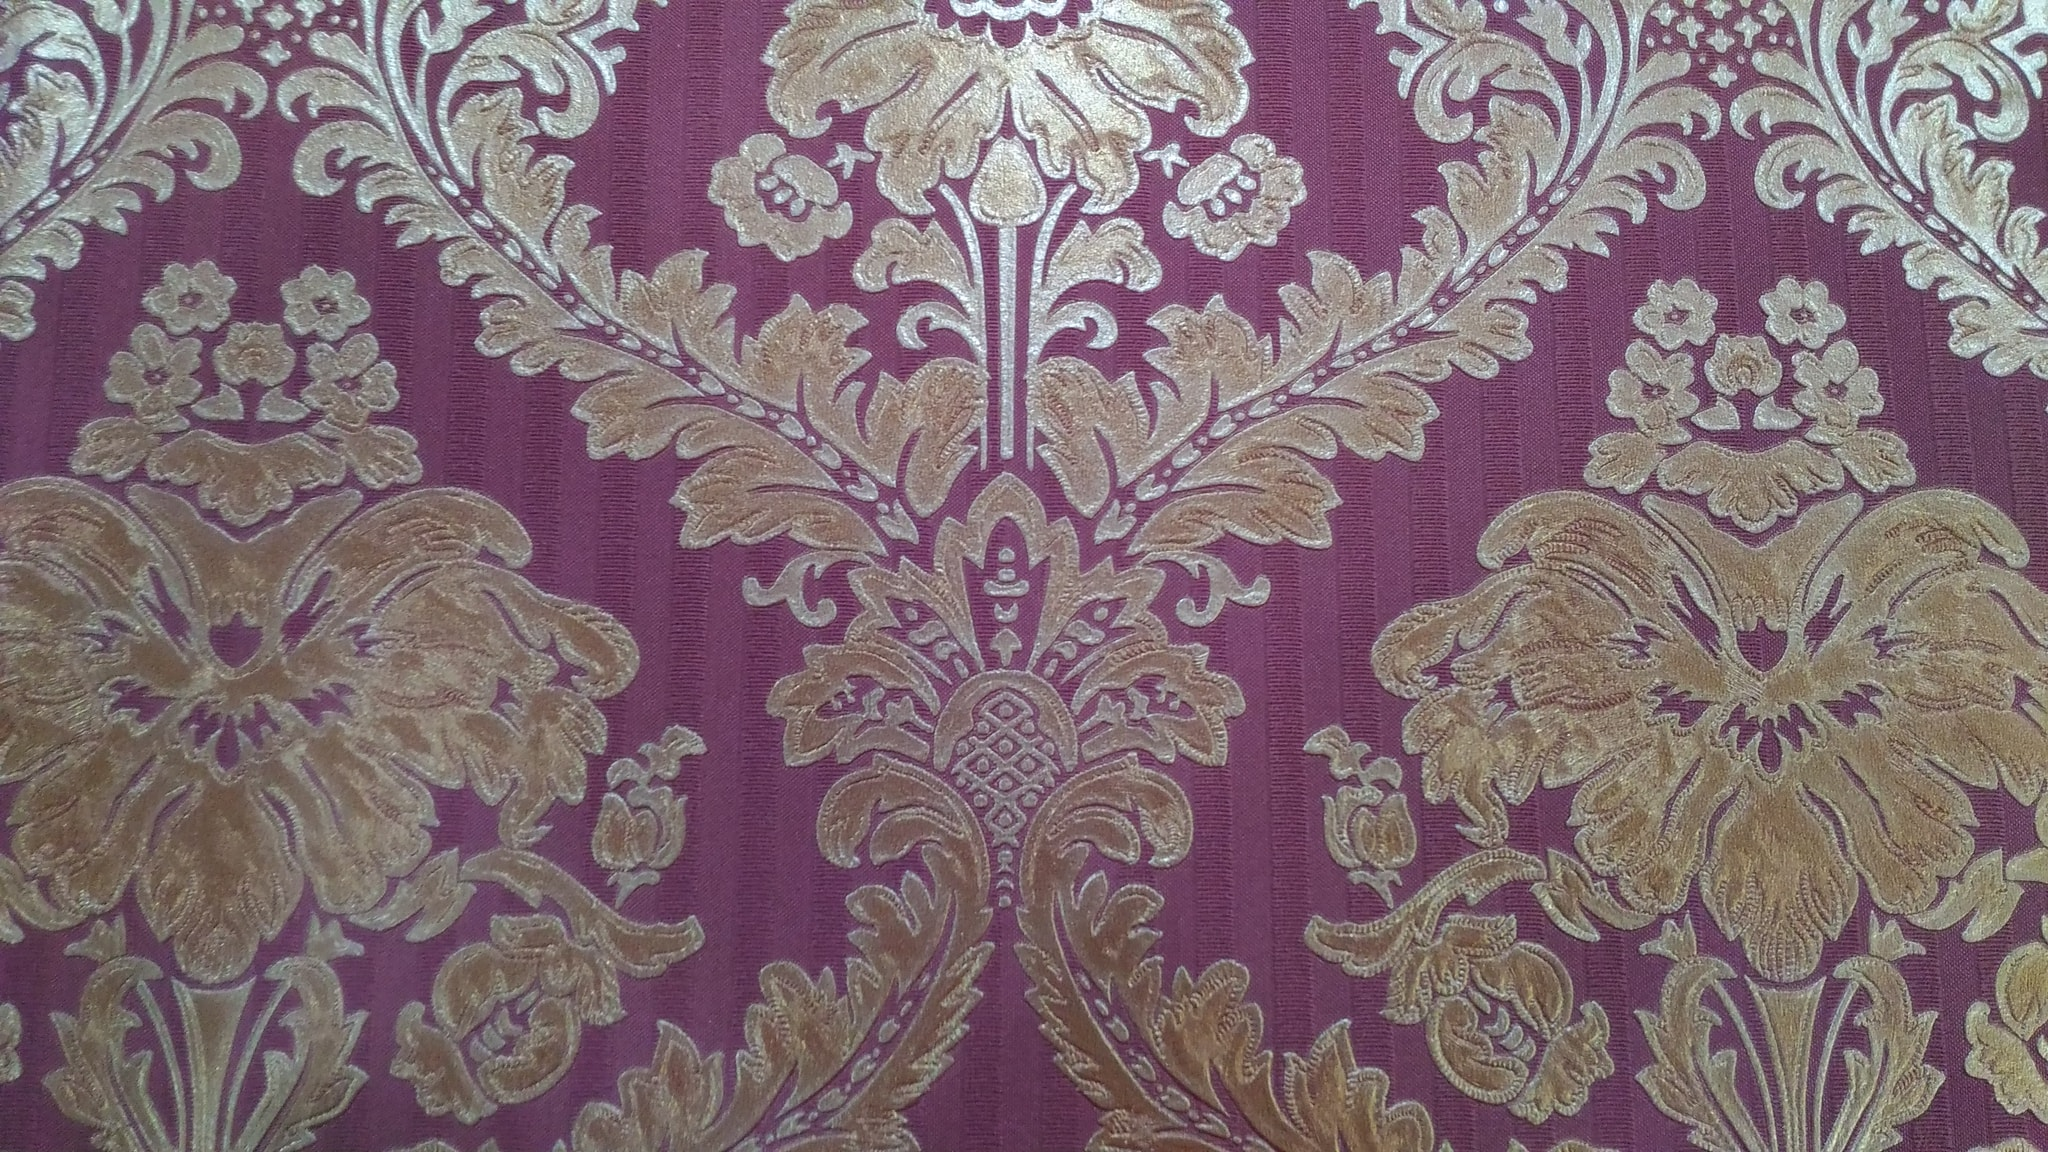 Jual Wallpaper Dinding Motif Batik Warna Ungu Unique Carpet